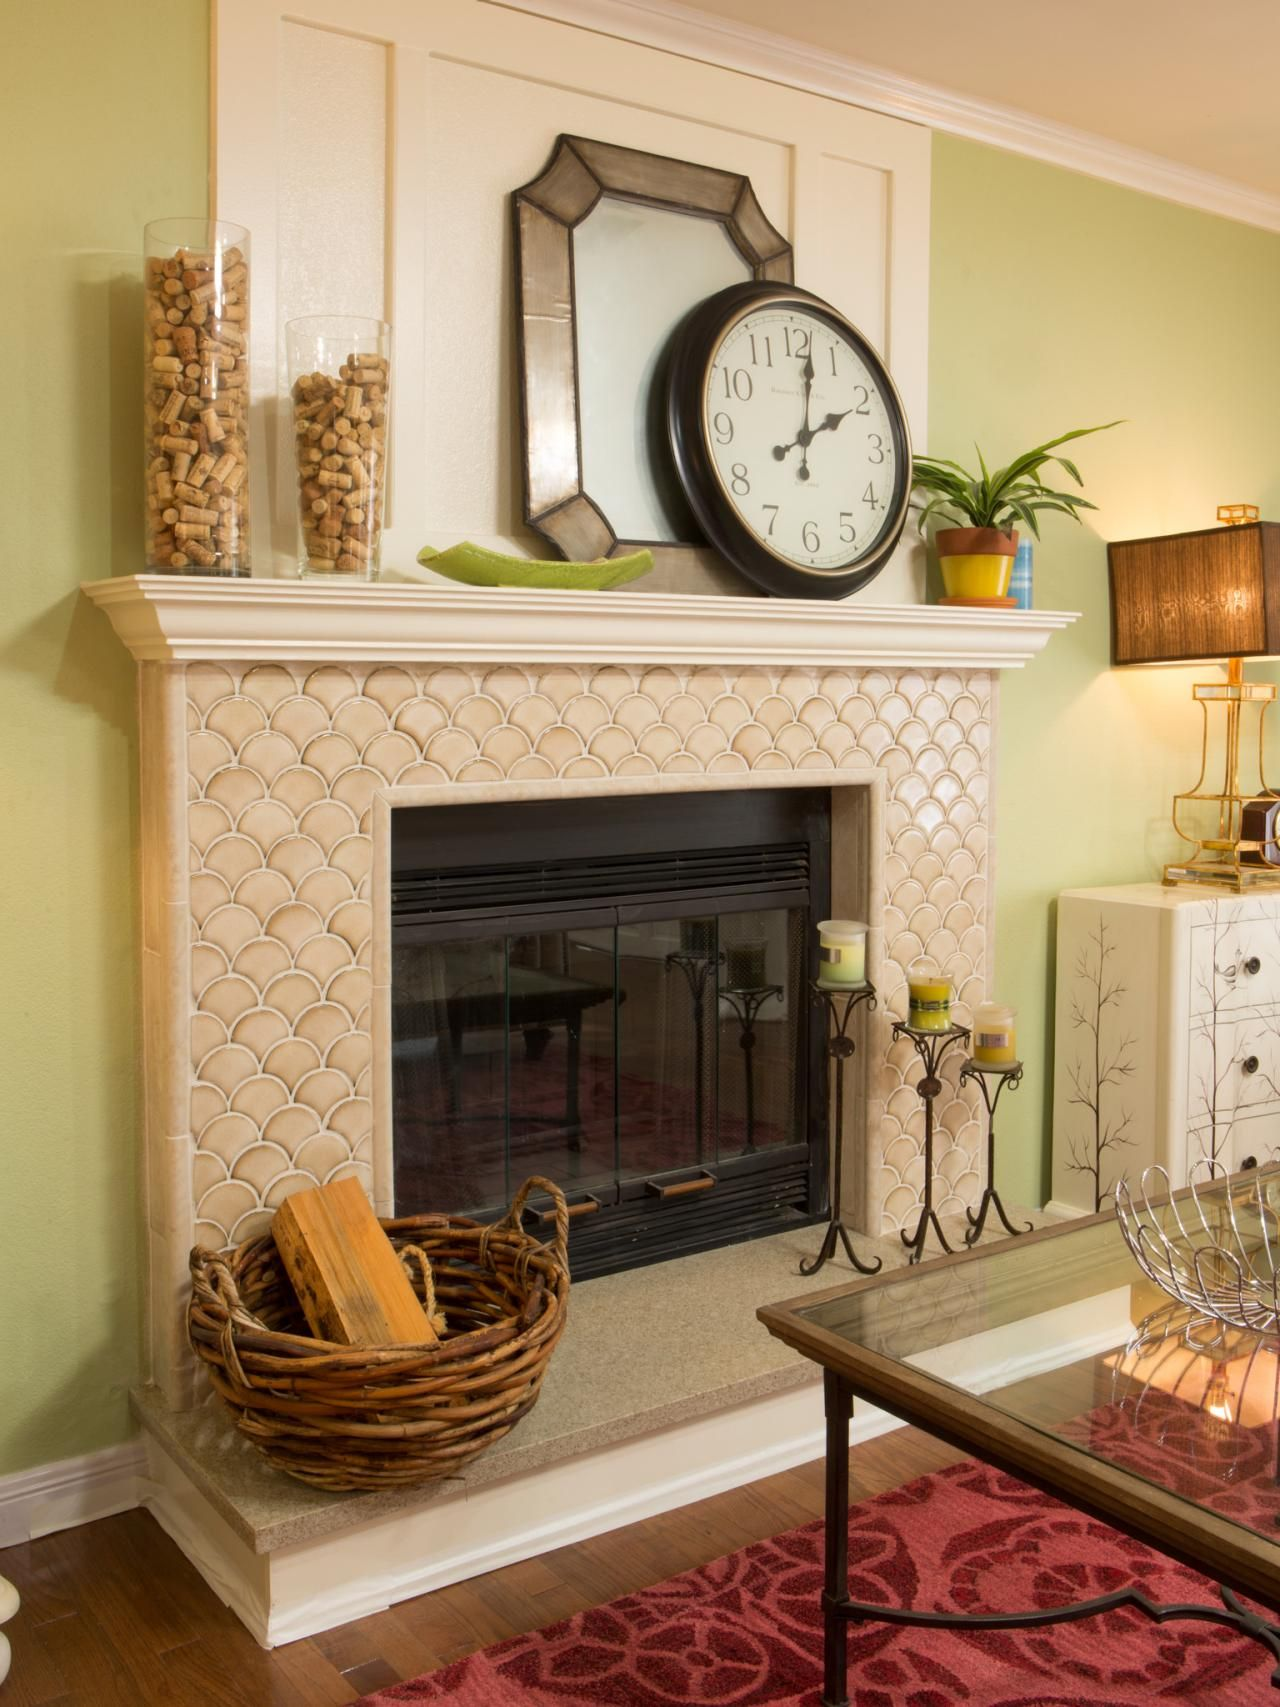 Large Decorative Tiles In This Livingroom Makeover Featured On Hgtv's Brother Vs